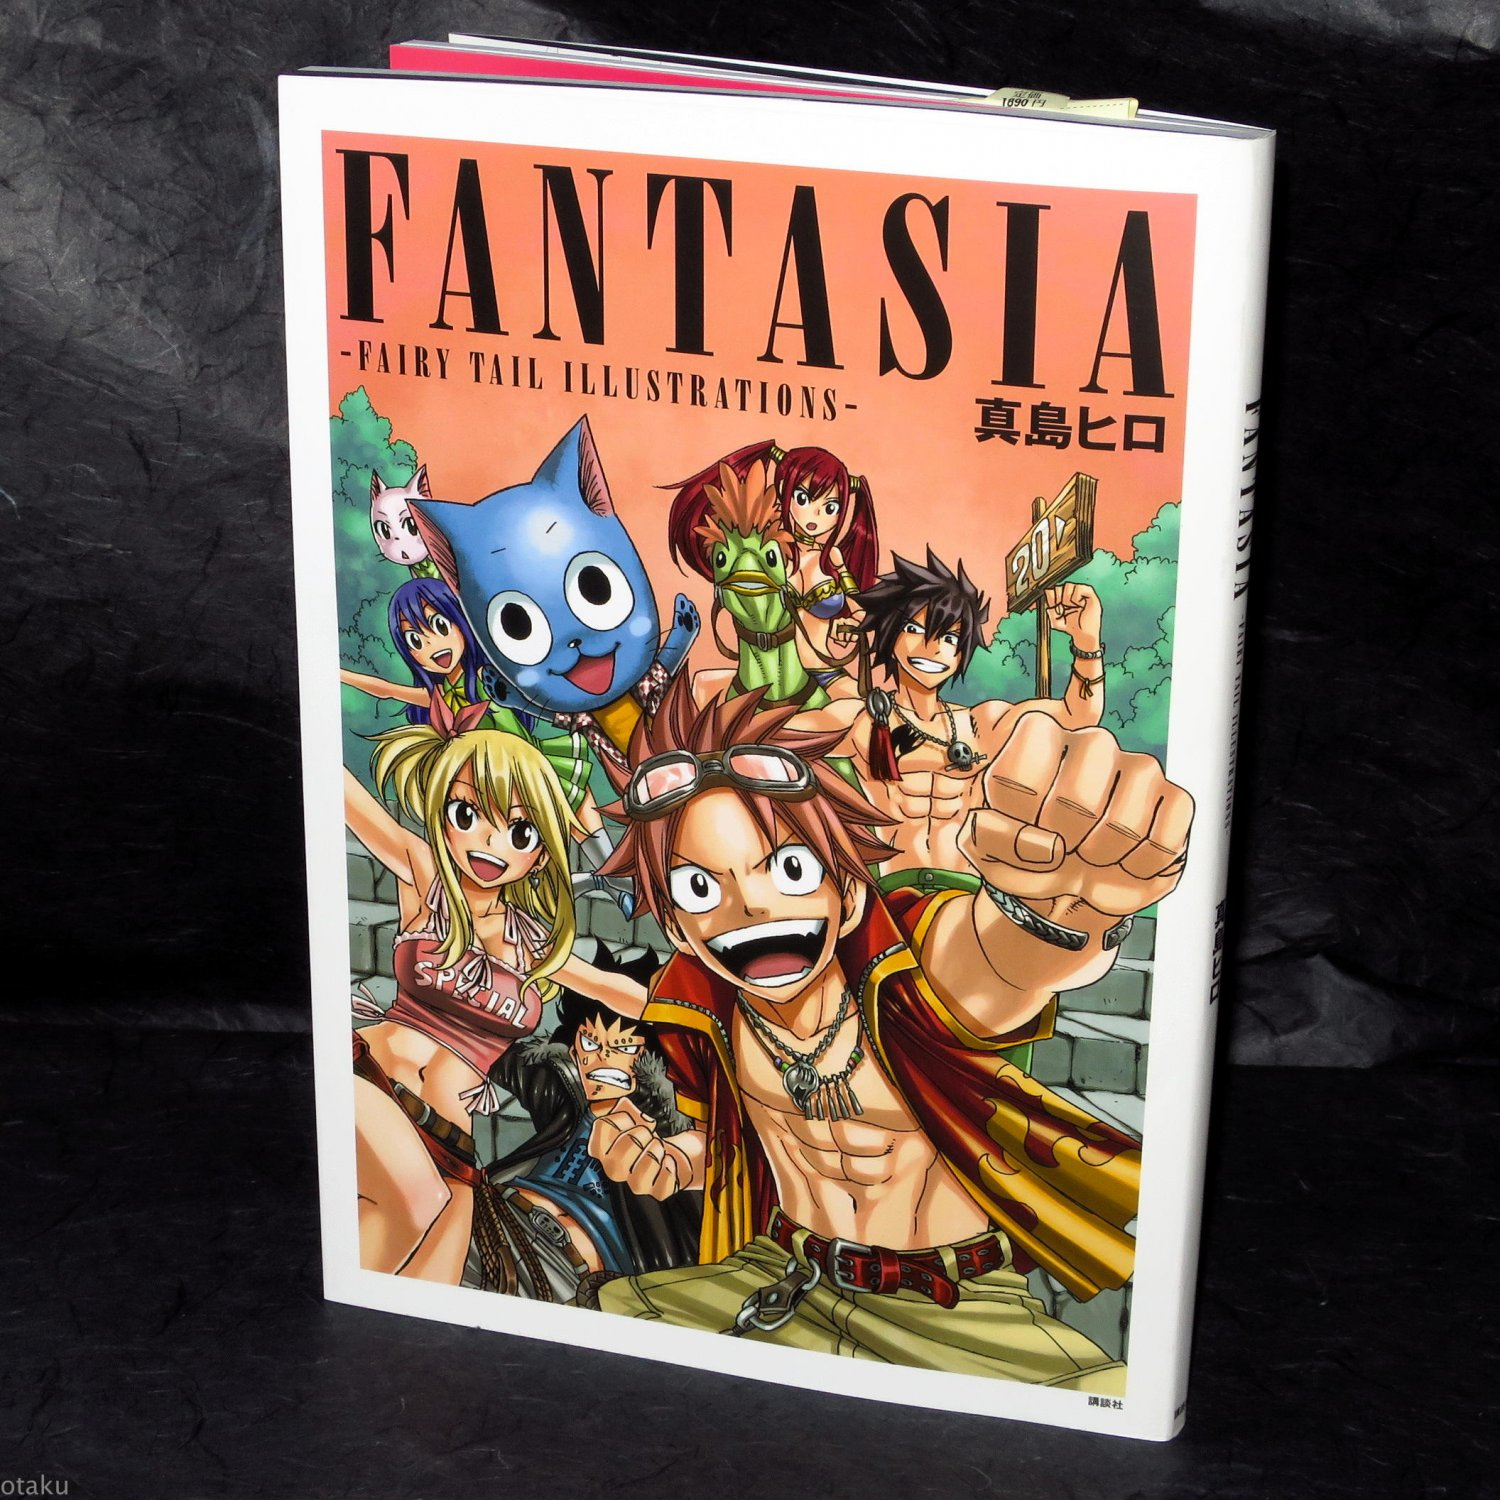 Mashima Hiro Fairy Tail Illustrations Art Book Fantasia Japan Anime Manga